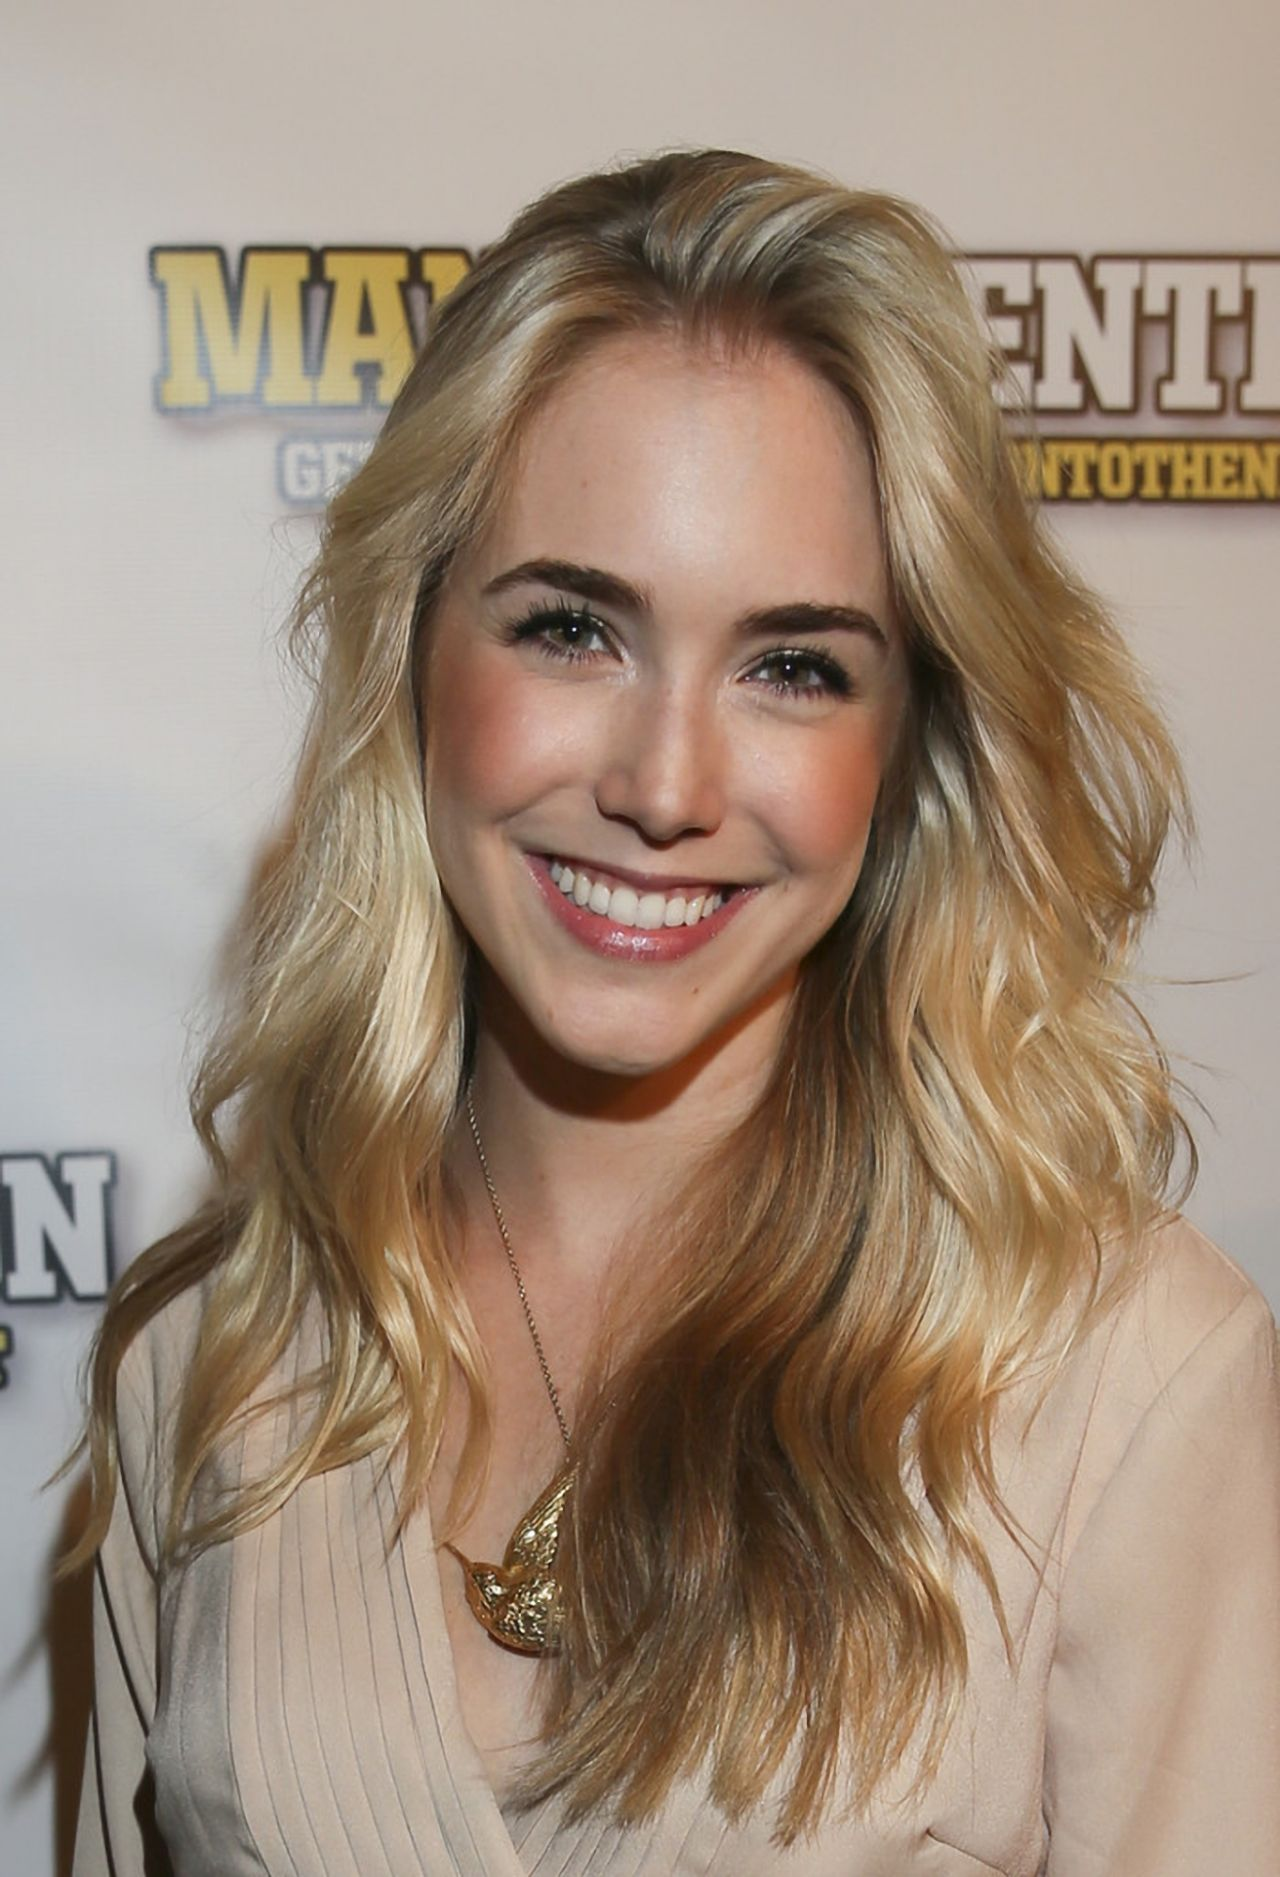 Spencer Locke Mantervention Red Carpet Press Screening